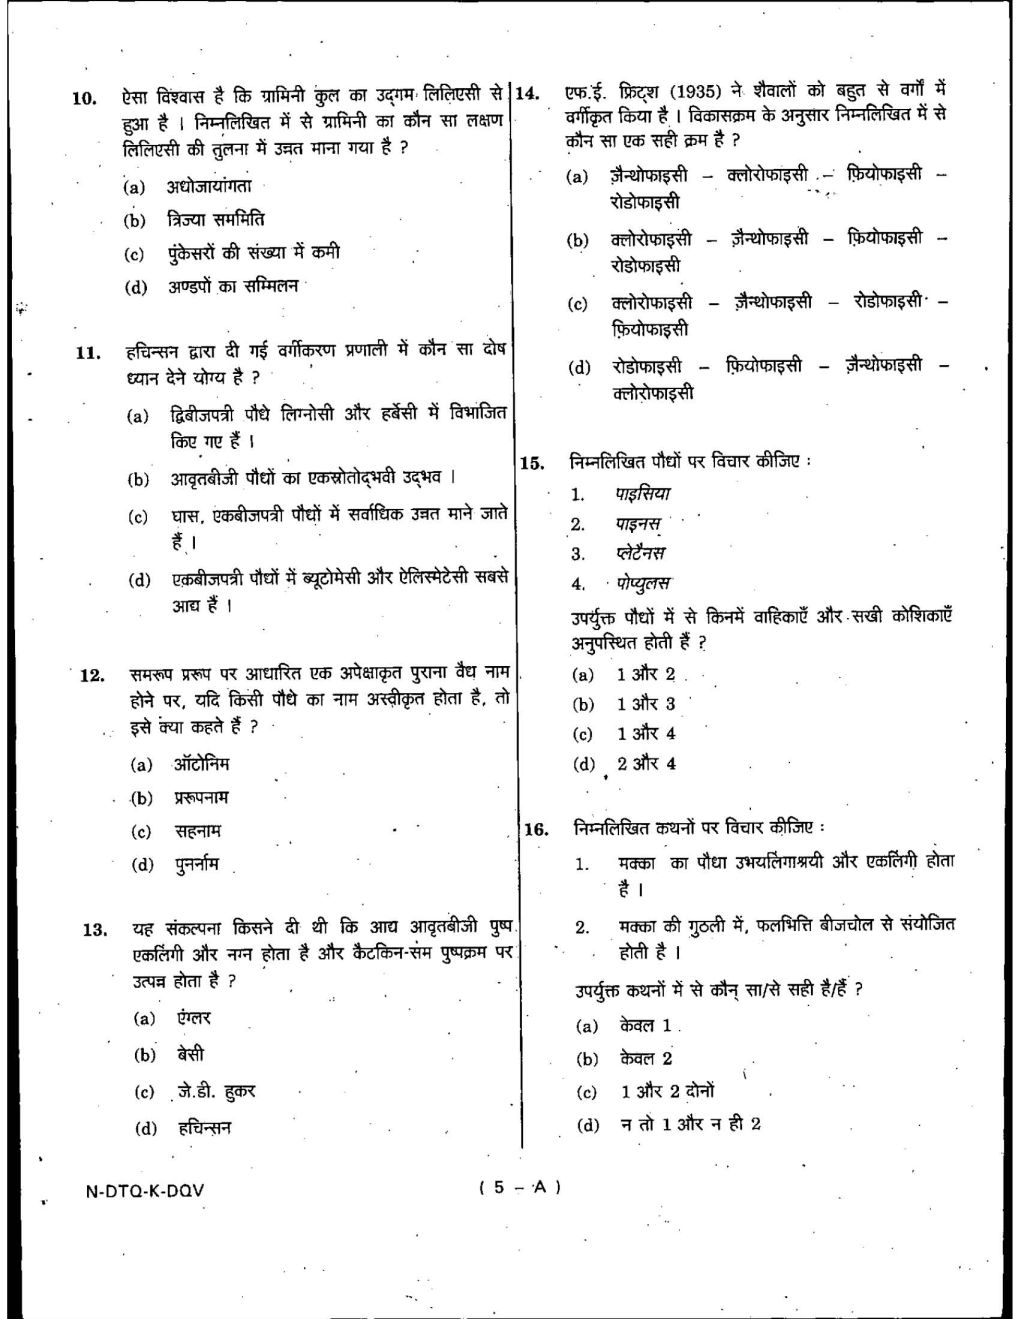 Essay Syllabus Civil Service Exam UPSC Mains Paper